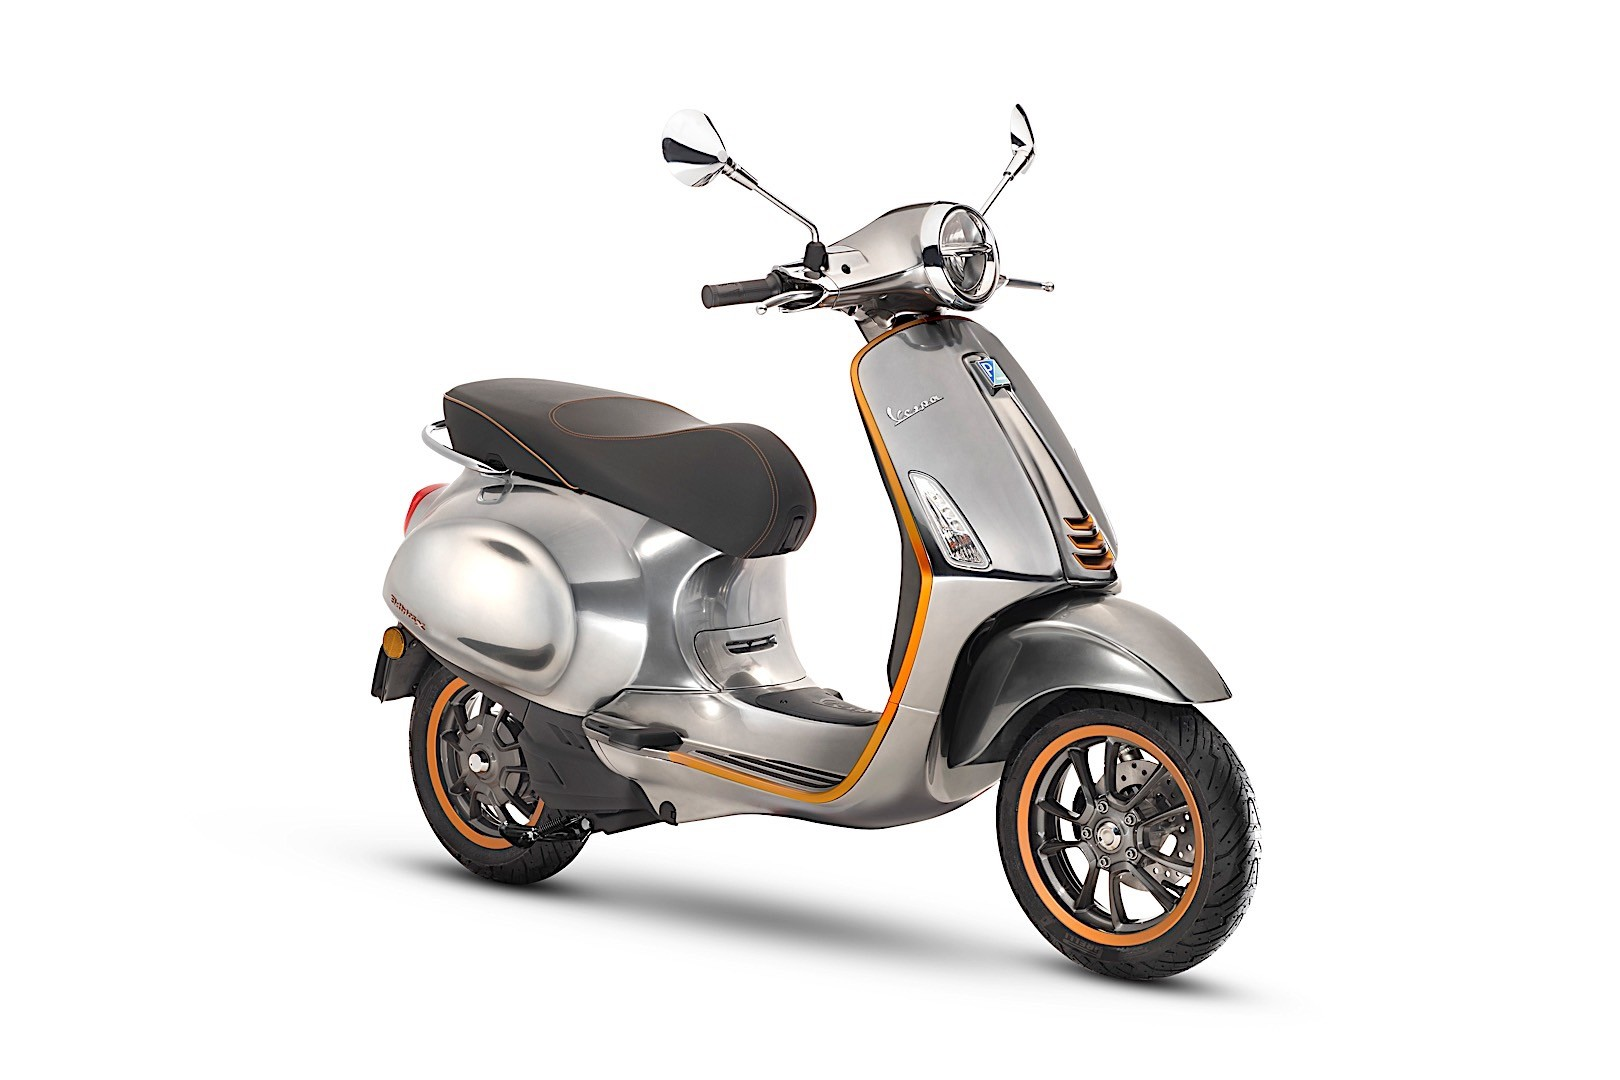 defective fuel pump triggers piaggio and vespa recall. Black Bedroom Furniture Sets. Home Design Ideas